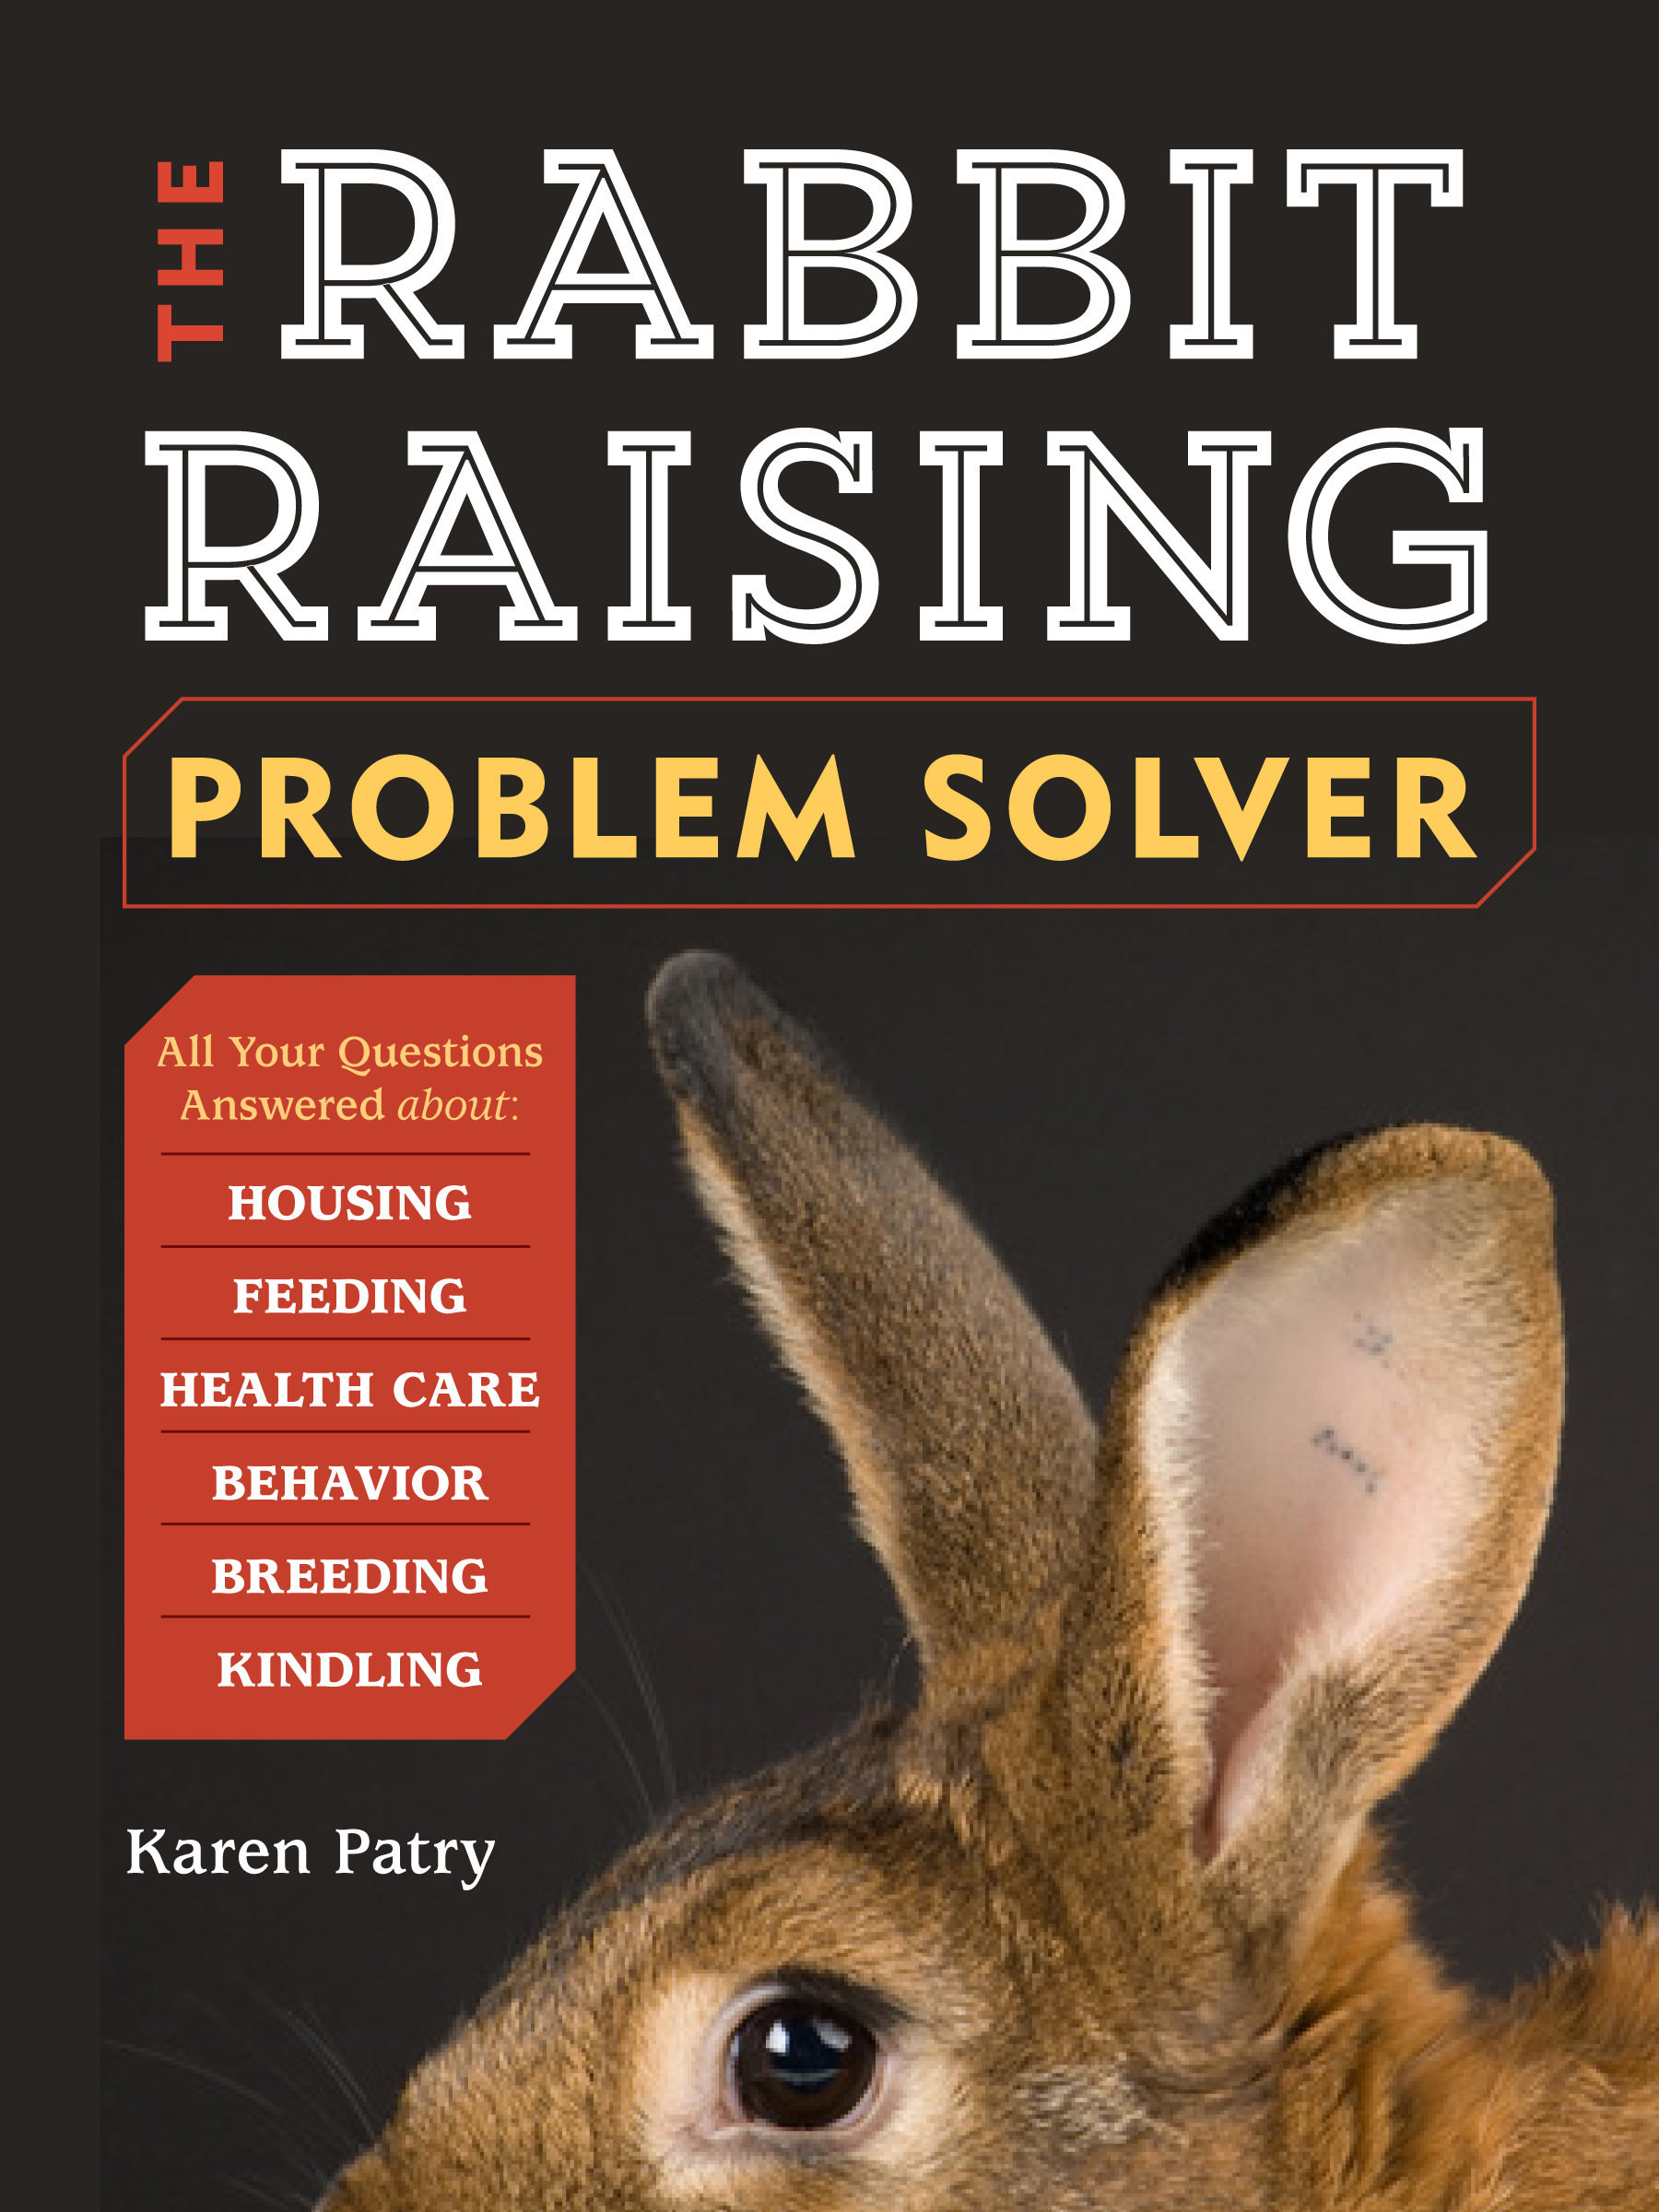 The Rabbit-Raising Problem Solver Your Questions Answered about Housing, Feeding, Behavior, Health Care, Breeding, and Kindling - Karen Patry